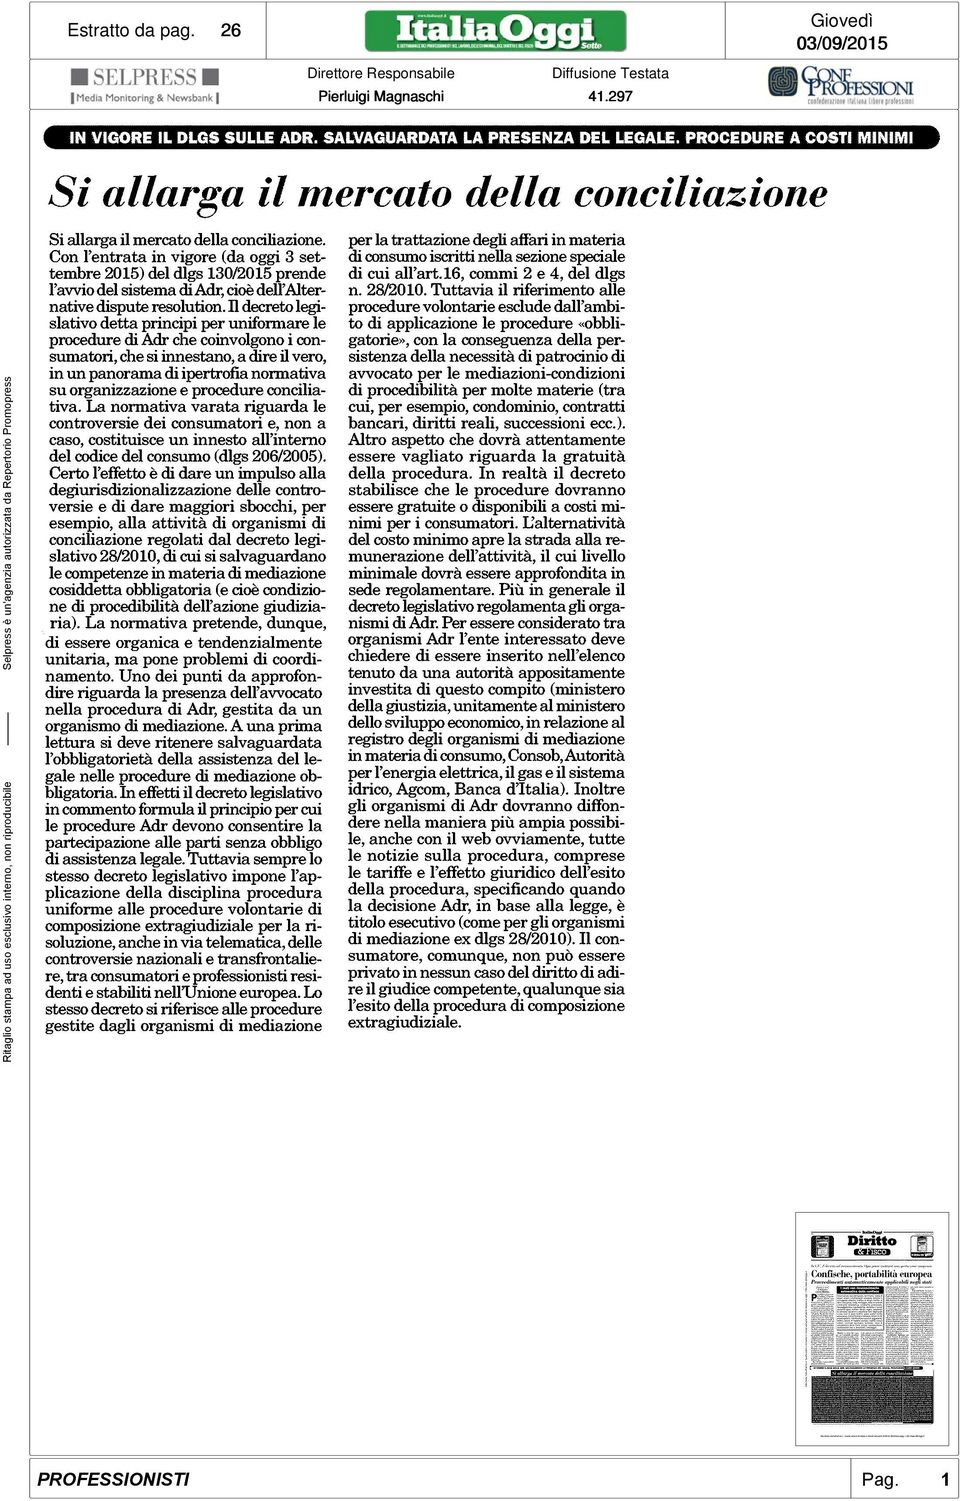 Con l'entrata in vigore (da oggi 3 settembre 2015) del digs 130/2015 prende l'avvio del sistema di Adr, cioè dell'alternative dispute resolution.